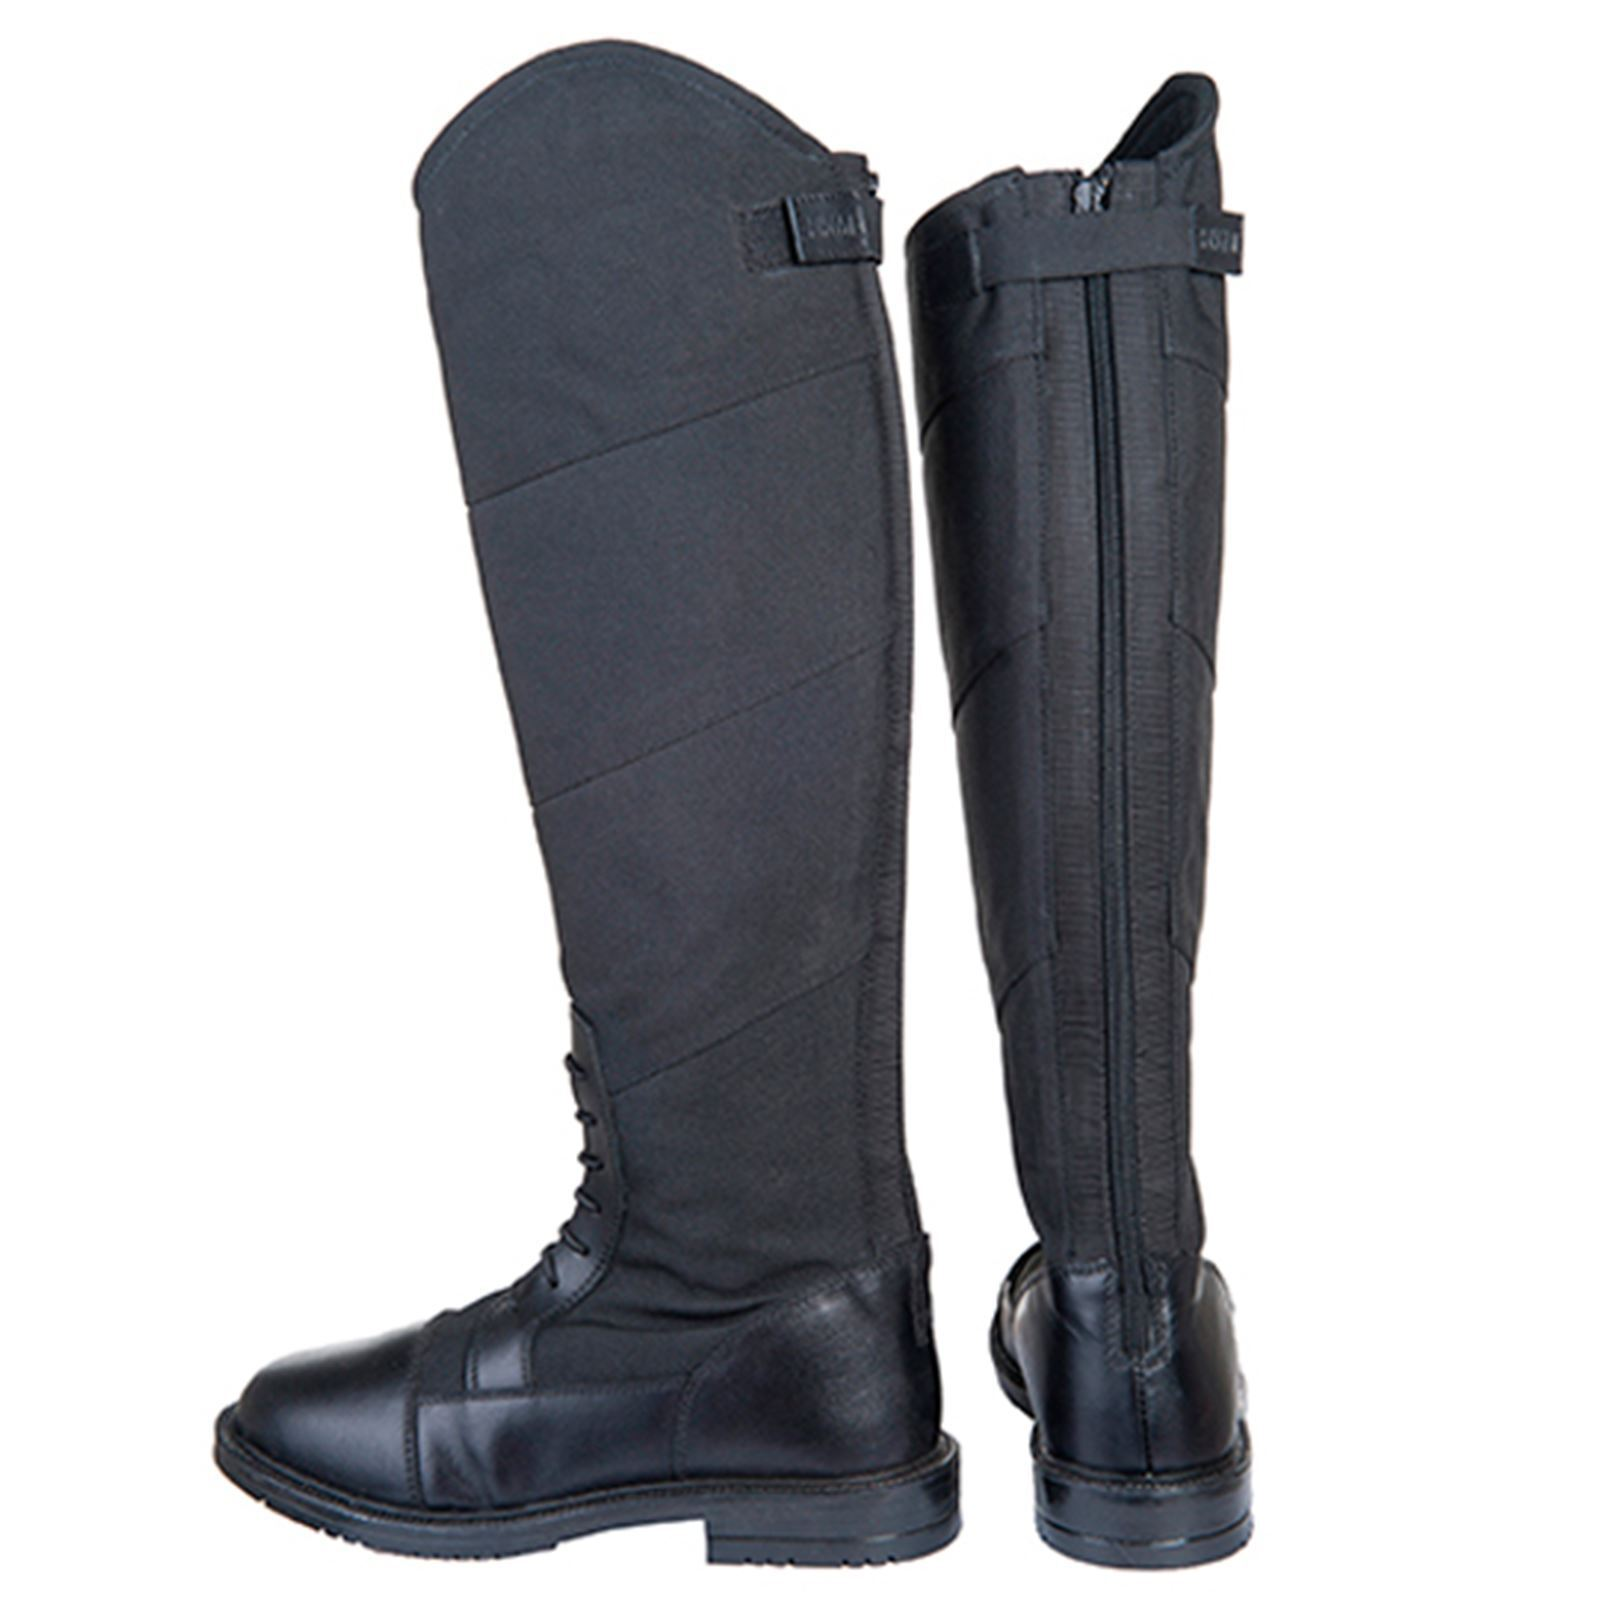 HKM Junior Ladies Style Elasticated Waterproof Rubber Sole Horse Riding Boots